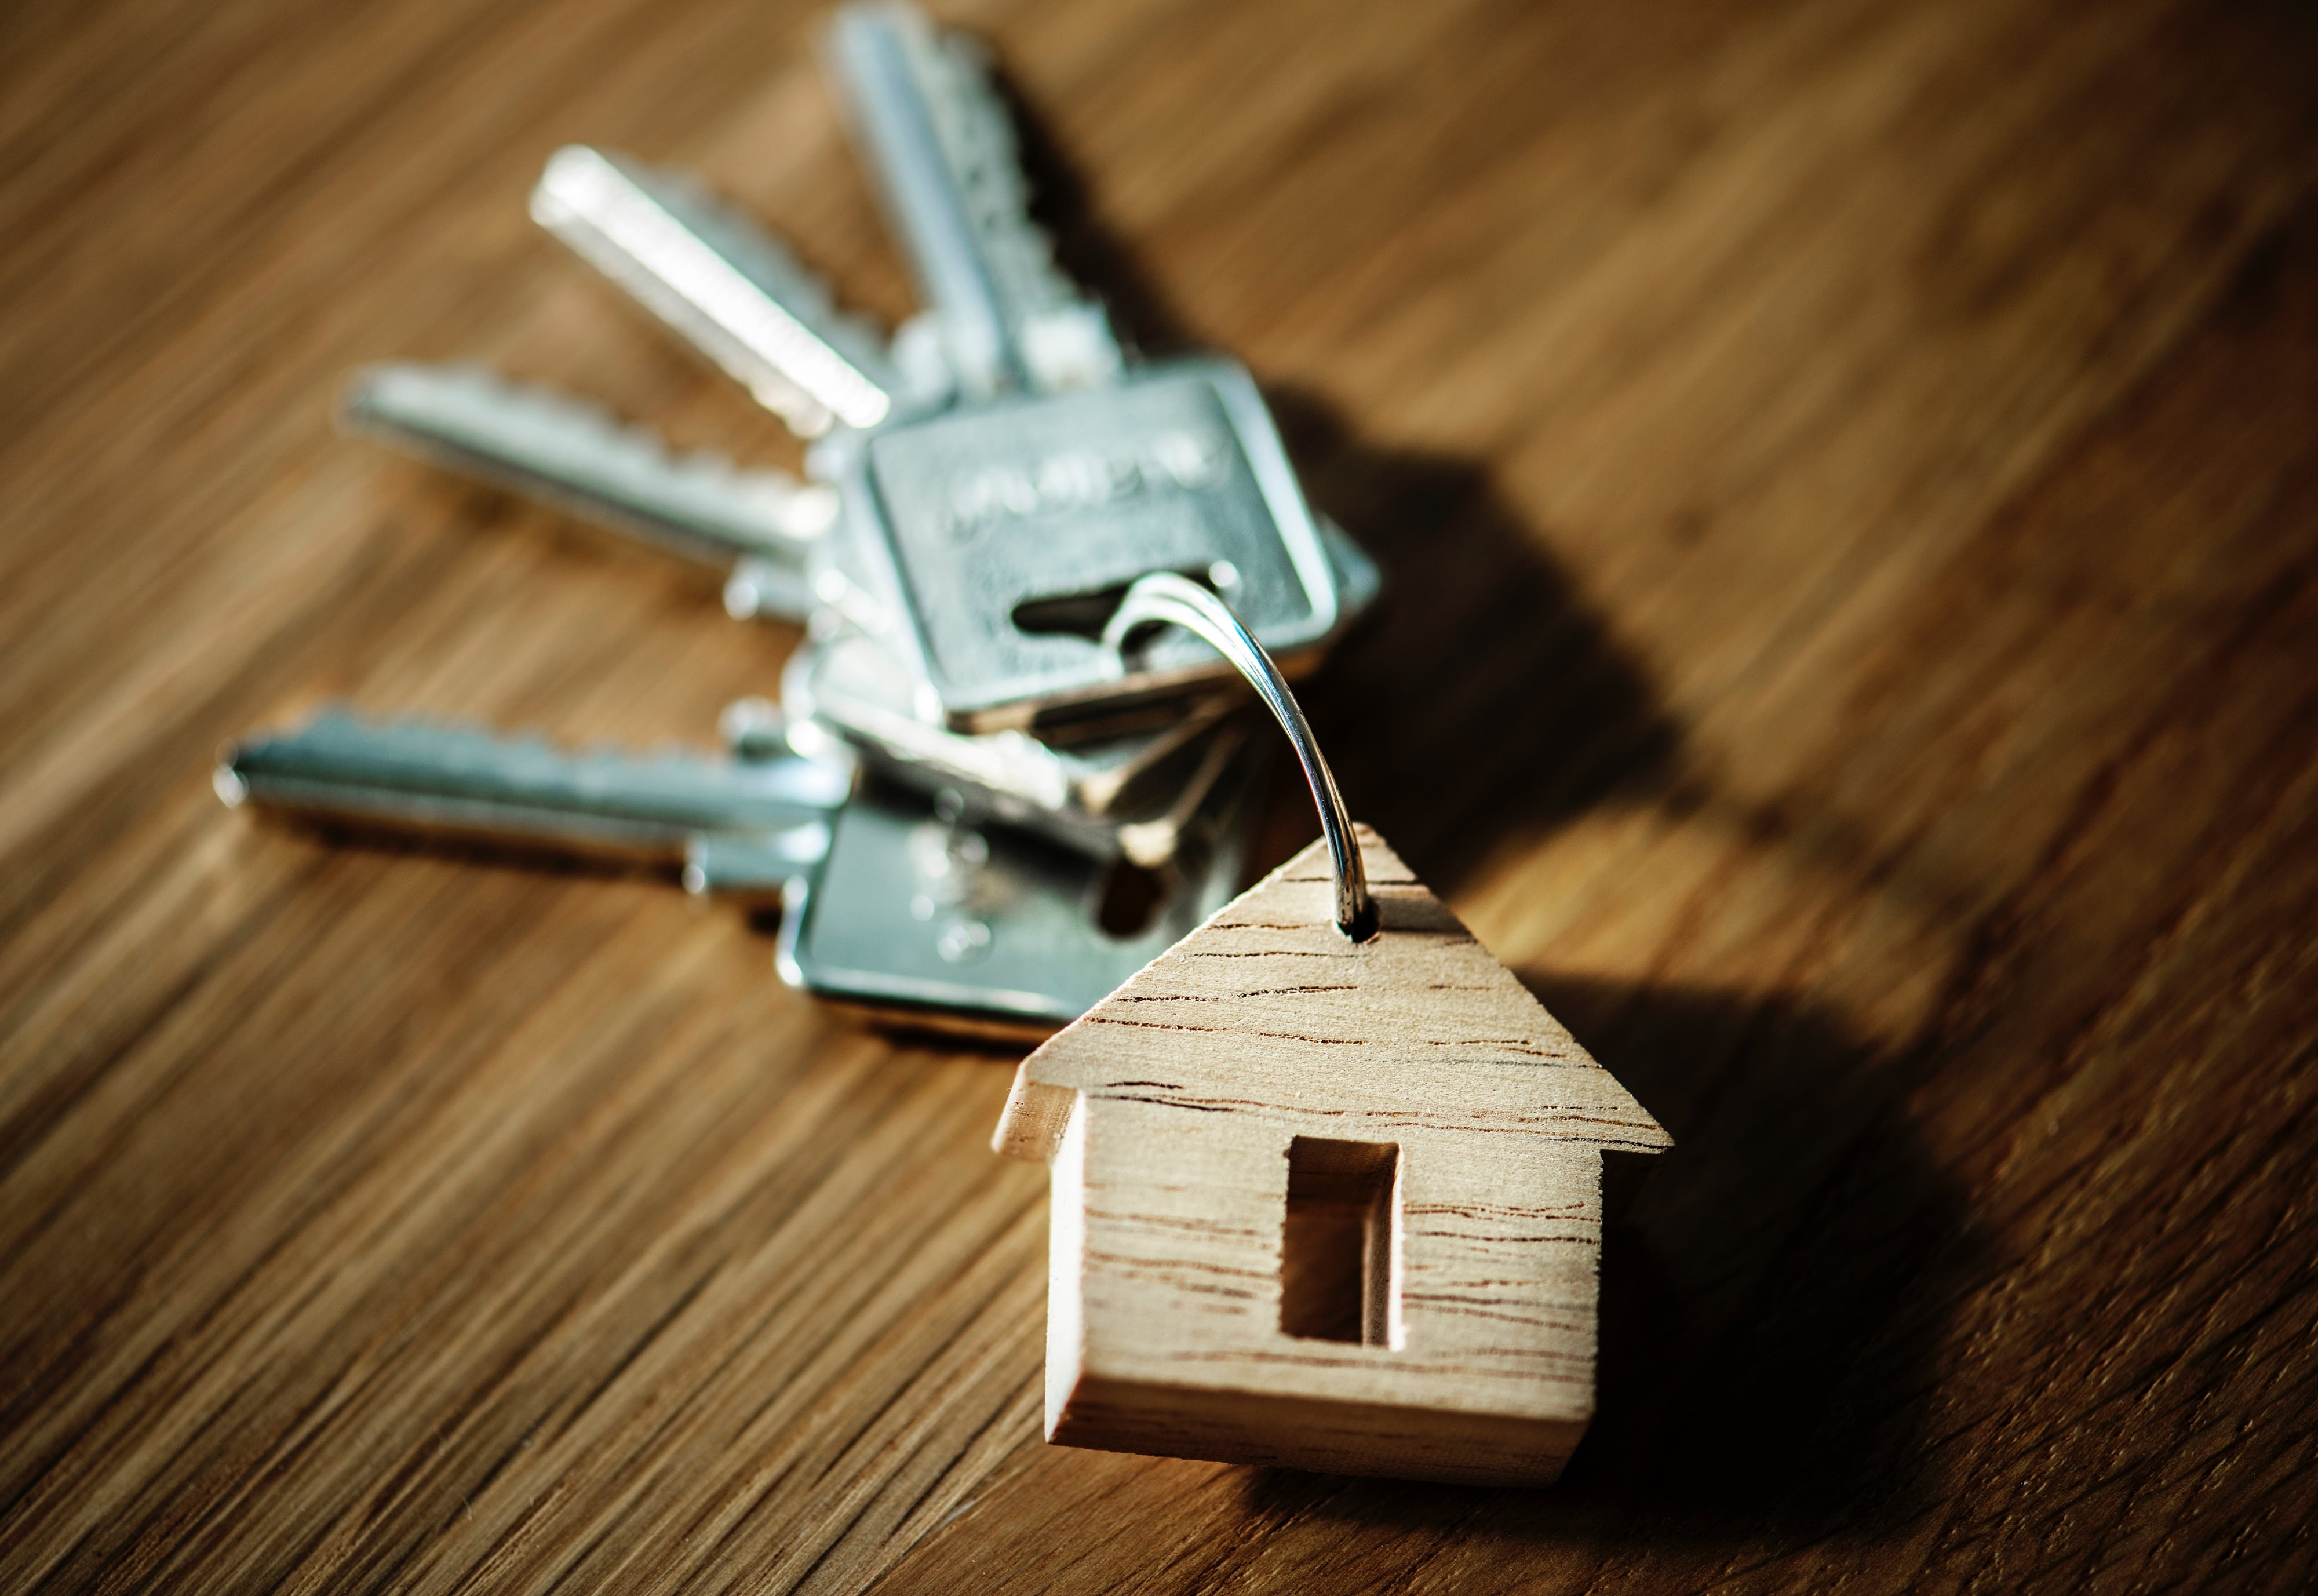 The possibilities when it comes to owning your first home